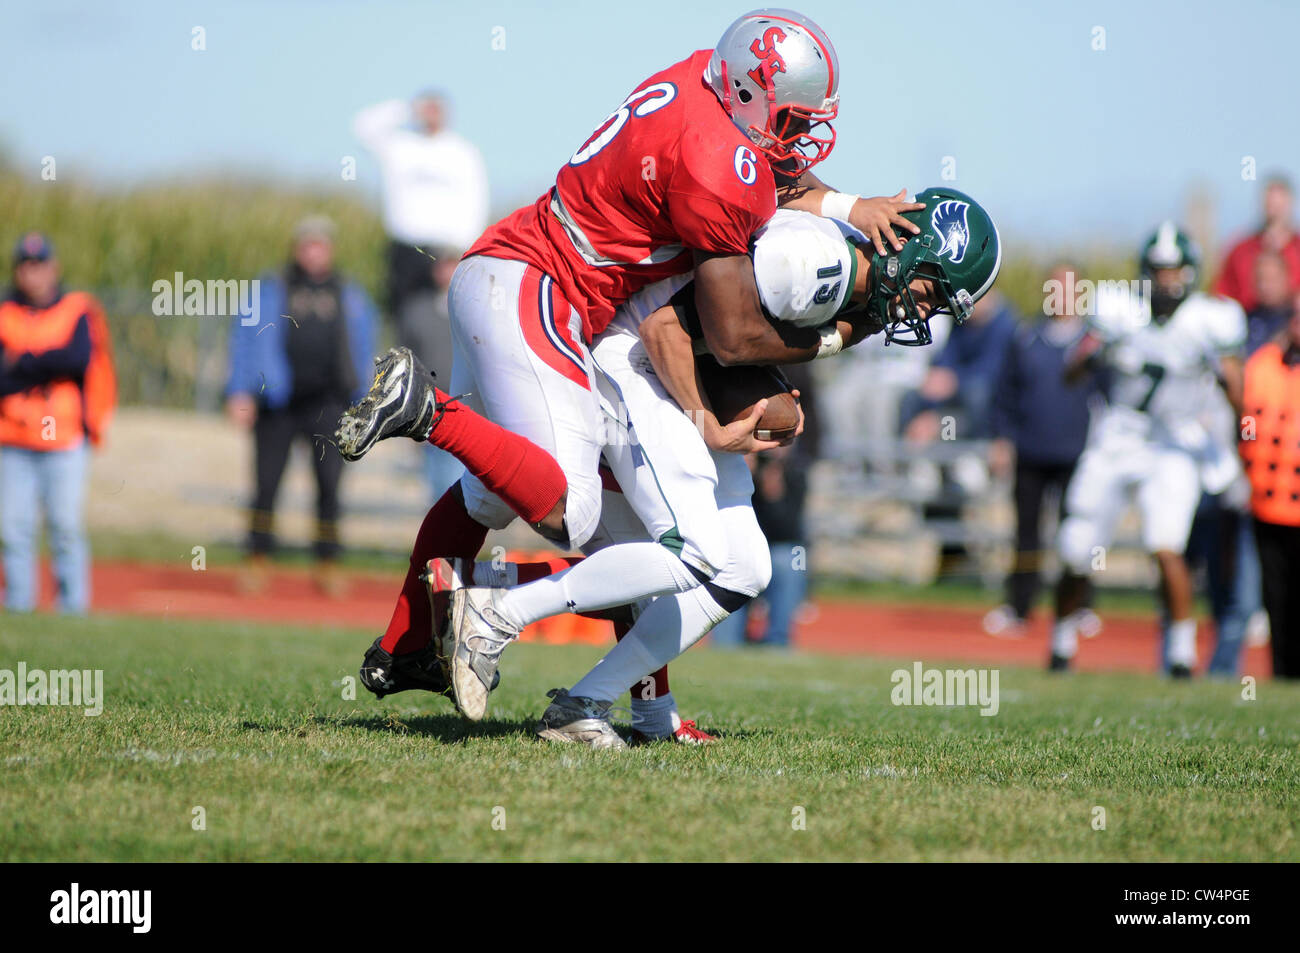 Football Defensive player sacks quarterback during a high school game. - Stock Image